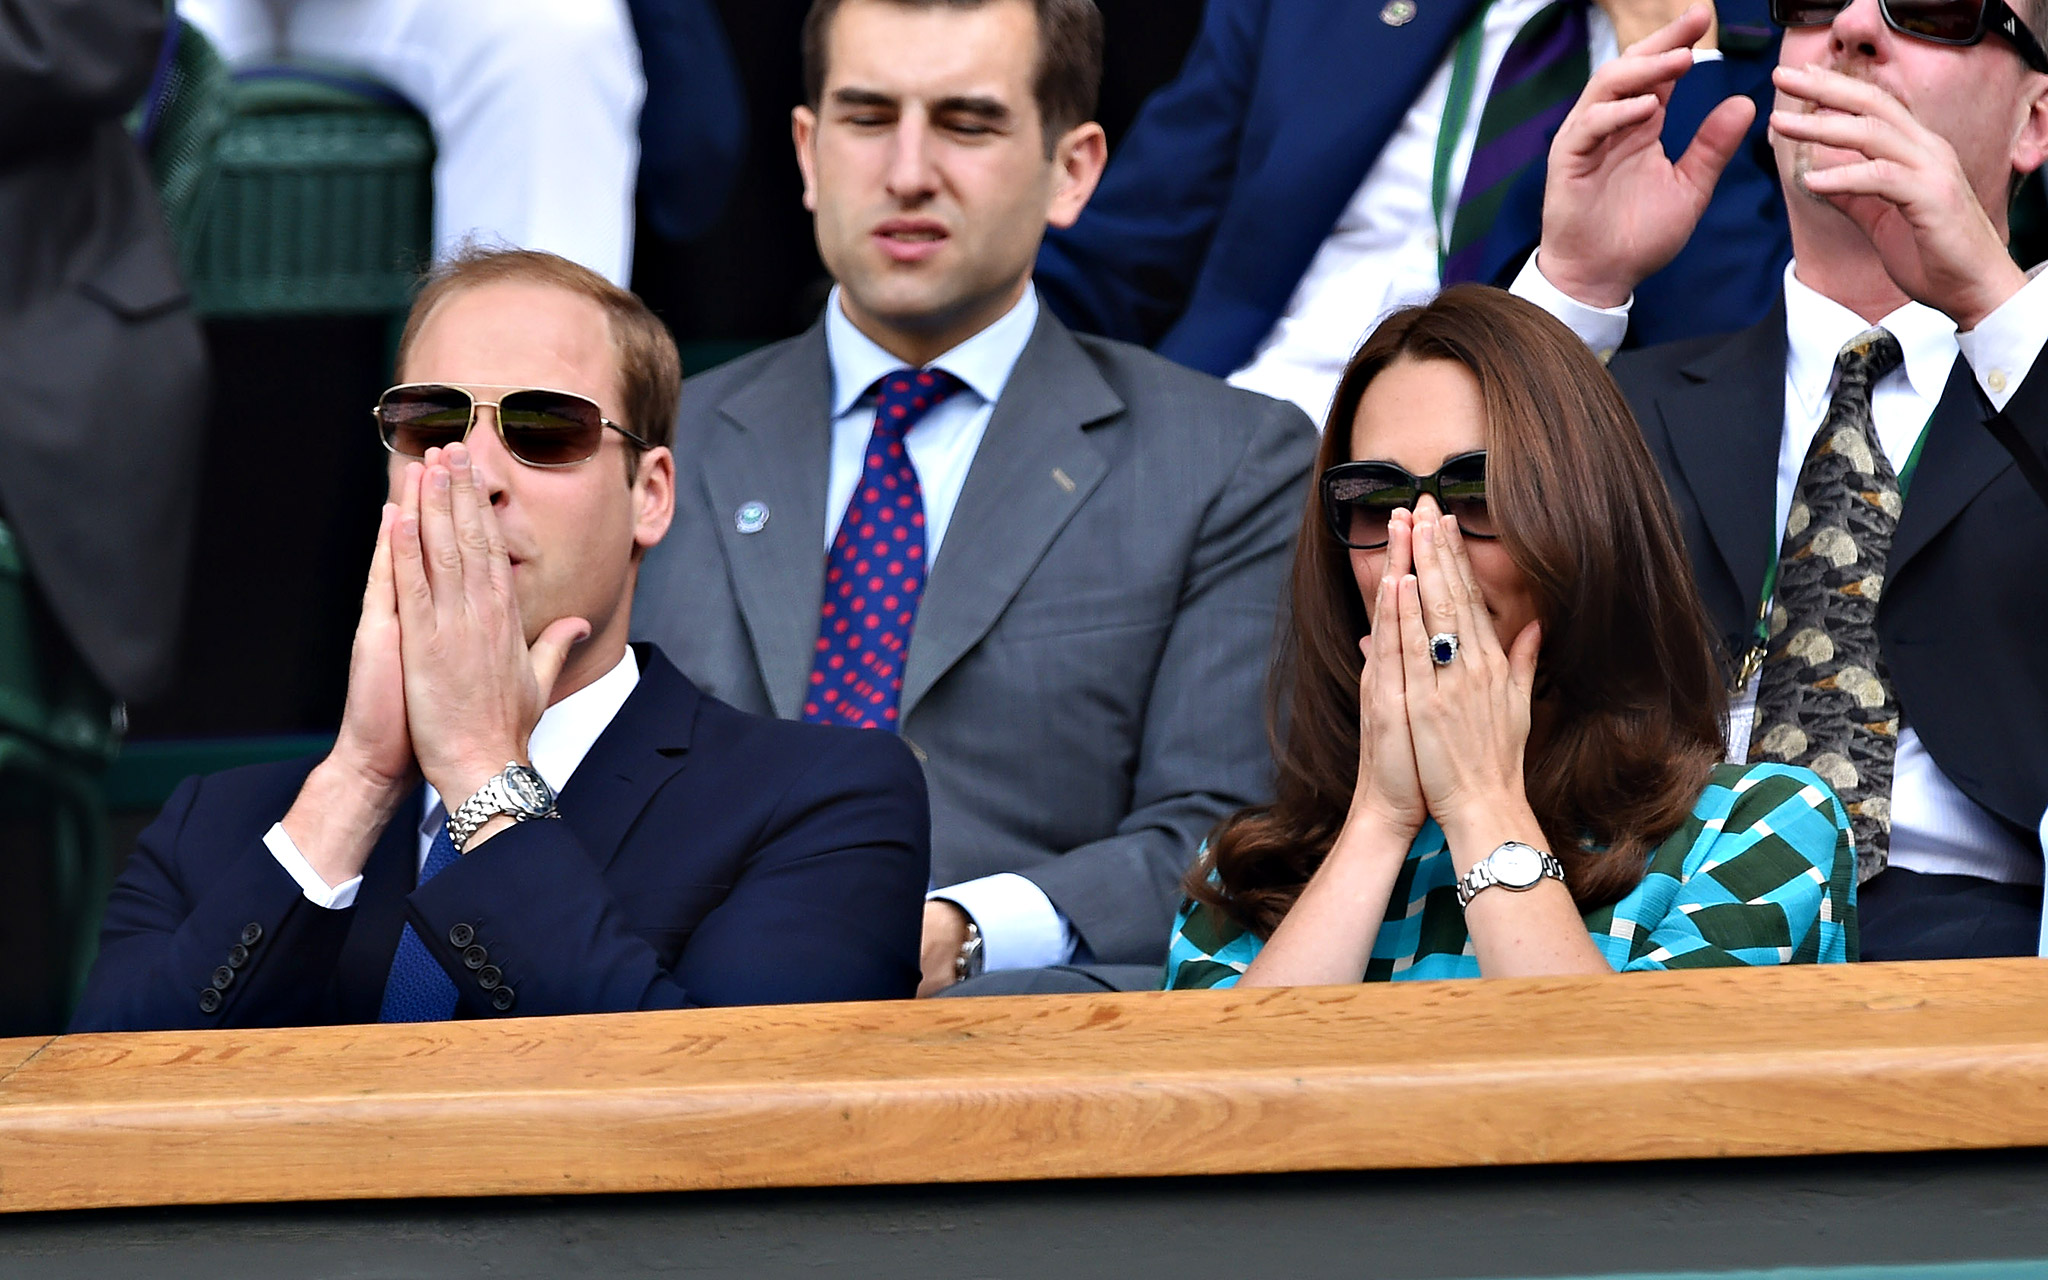 Kate, Duchess of Cambridge and Prince William, Duke of Cambridge attend the Wimbledon men's final between Novak Djokovic and Roger Federer.